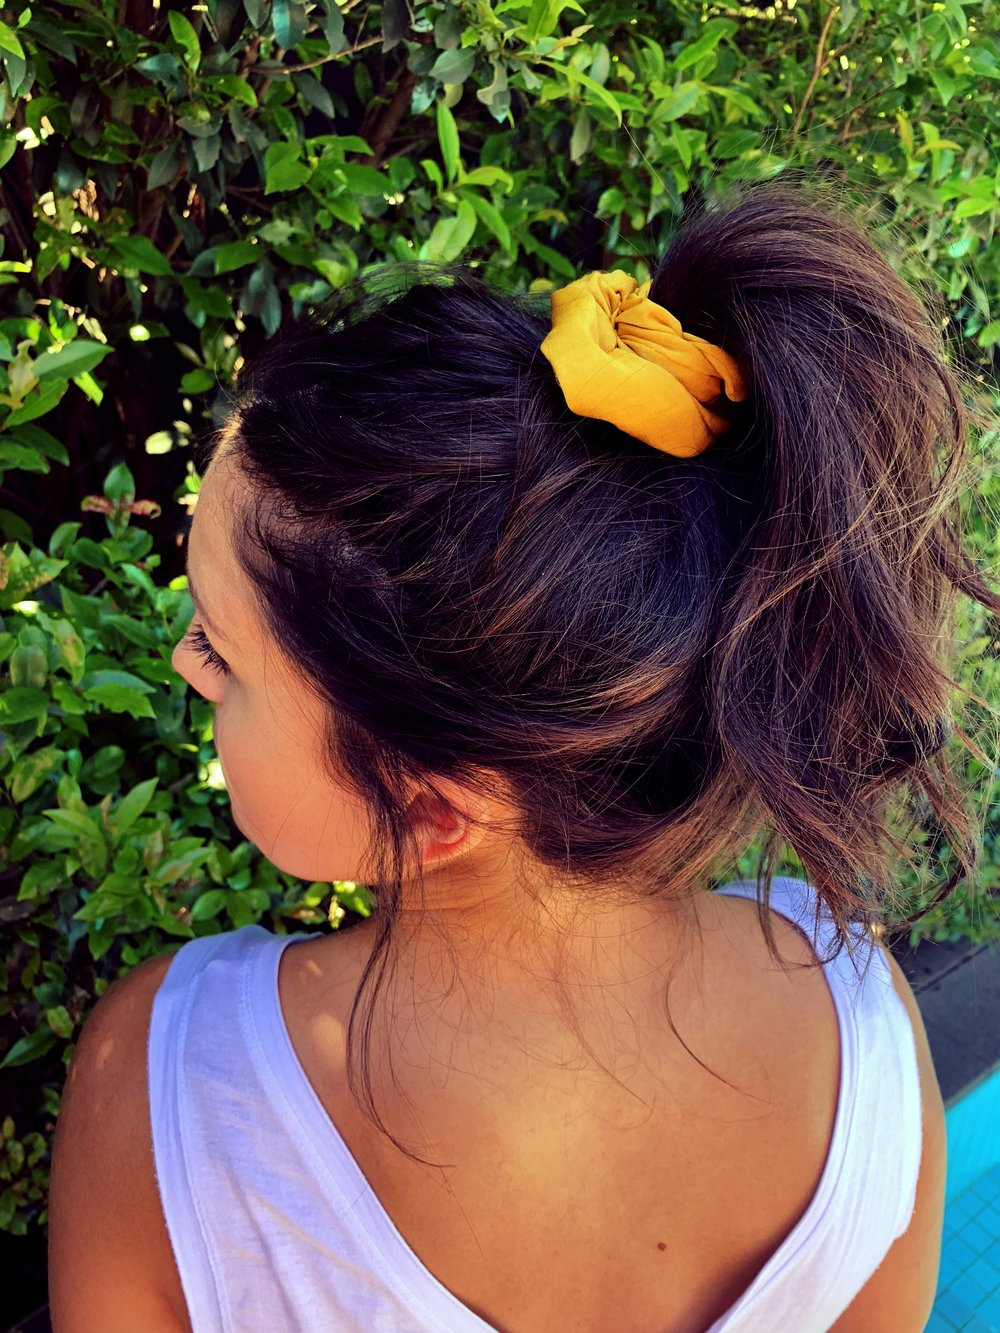 A great idea always starts with a messy bun… - Love them or hate them, we think they are here to stay. Please meet our newest obsession and must have accessory, Scrunchee.As somewhat of a top knot, messy bun aficionado creator of Scrunchee – Marlee knows a woman always means business when she puts her hair in a bun to just 'get sh*t done'So bringing her two loves of accessorizing and productivity together, Scrunchee strikes the perfect balance between fashion and functionAvailable in a variety of colours, our Scrunchee's can take you from the gym to happy hour with very little effort.Scrunchee adds a pop of colour to any outfit and we can assure you they won't let you or your hair down.